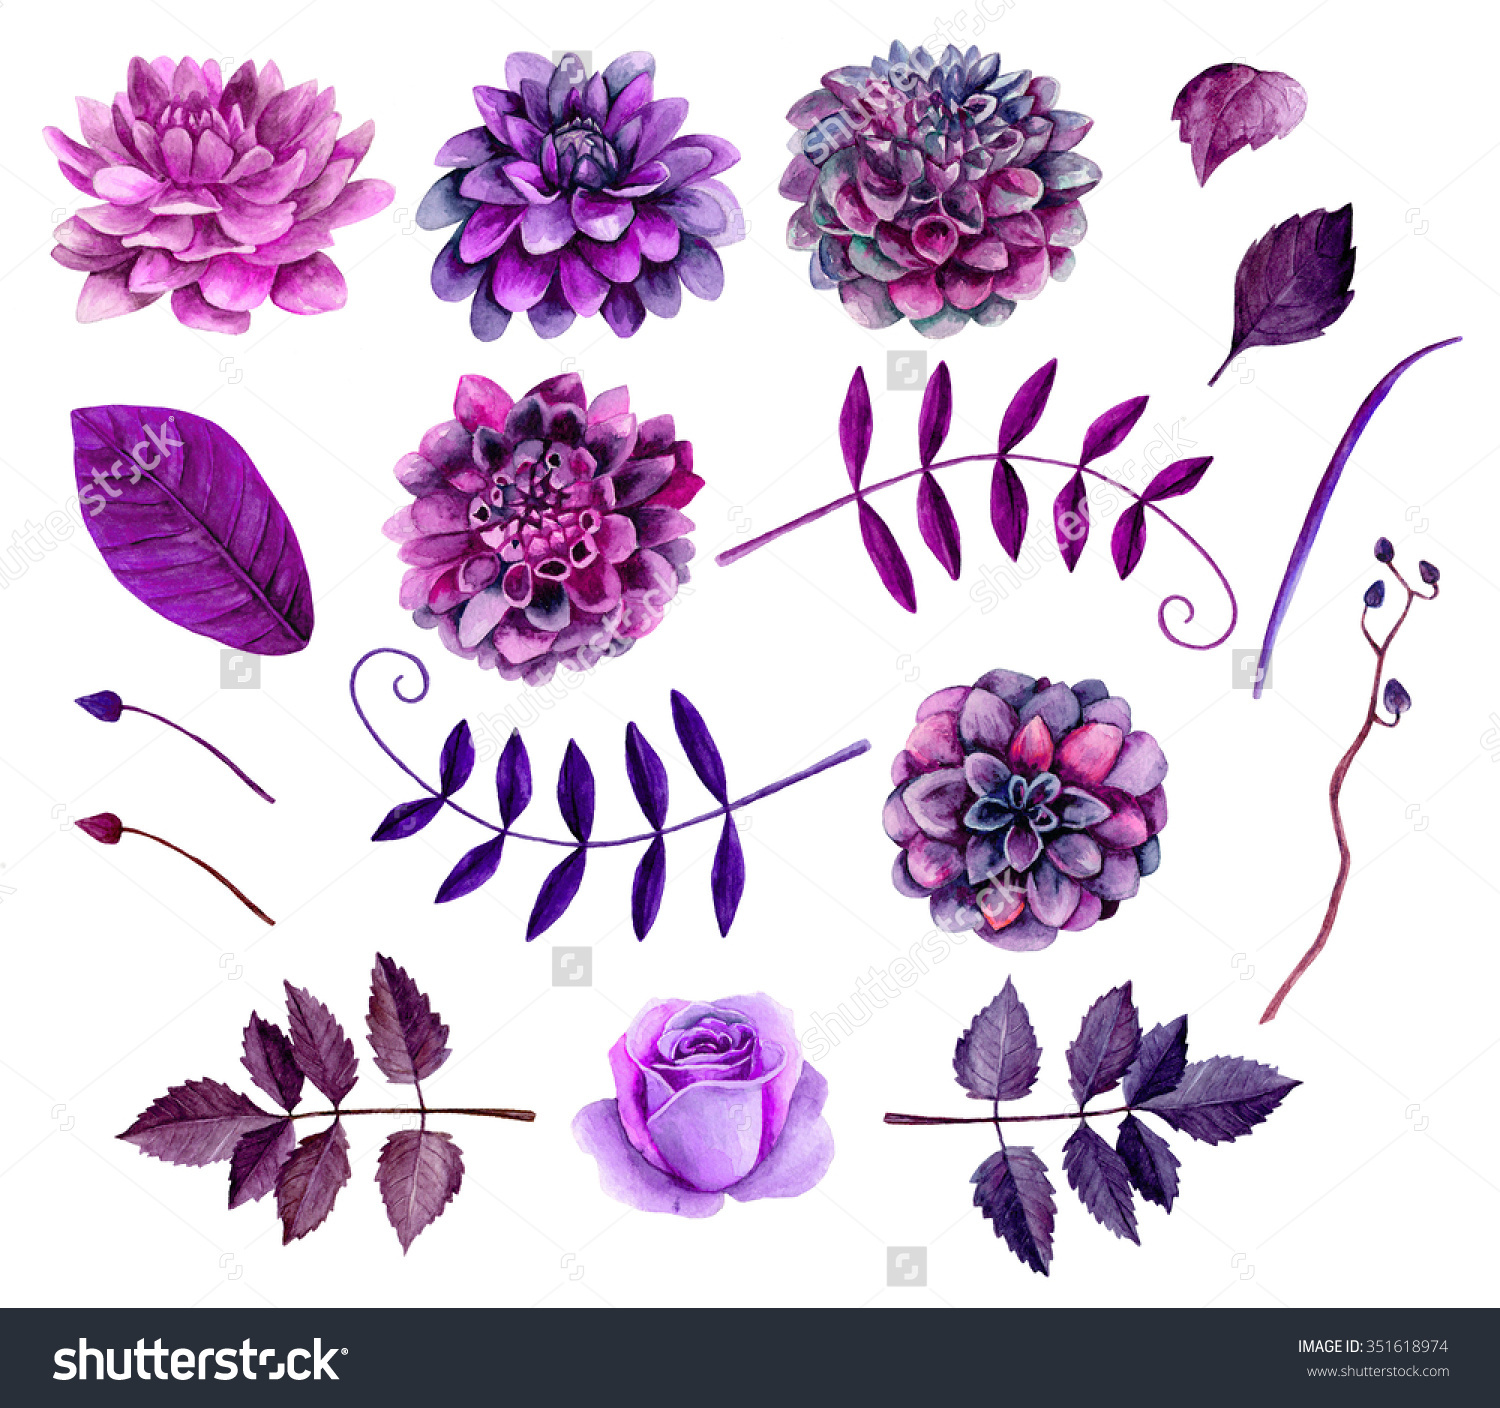 Floral images clipart vector black and white Watercolor Purple Flowers Clipart Floral Clip Stock Illustration ... vector black and white